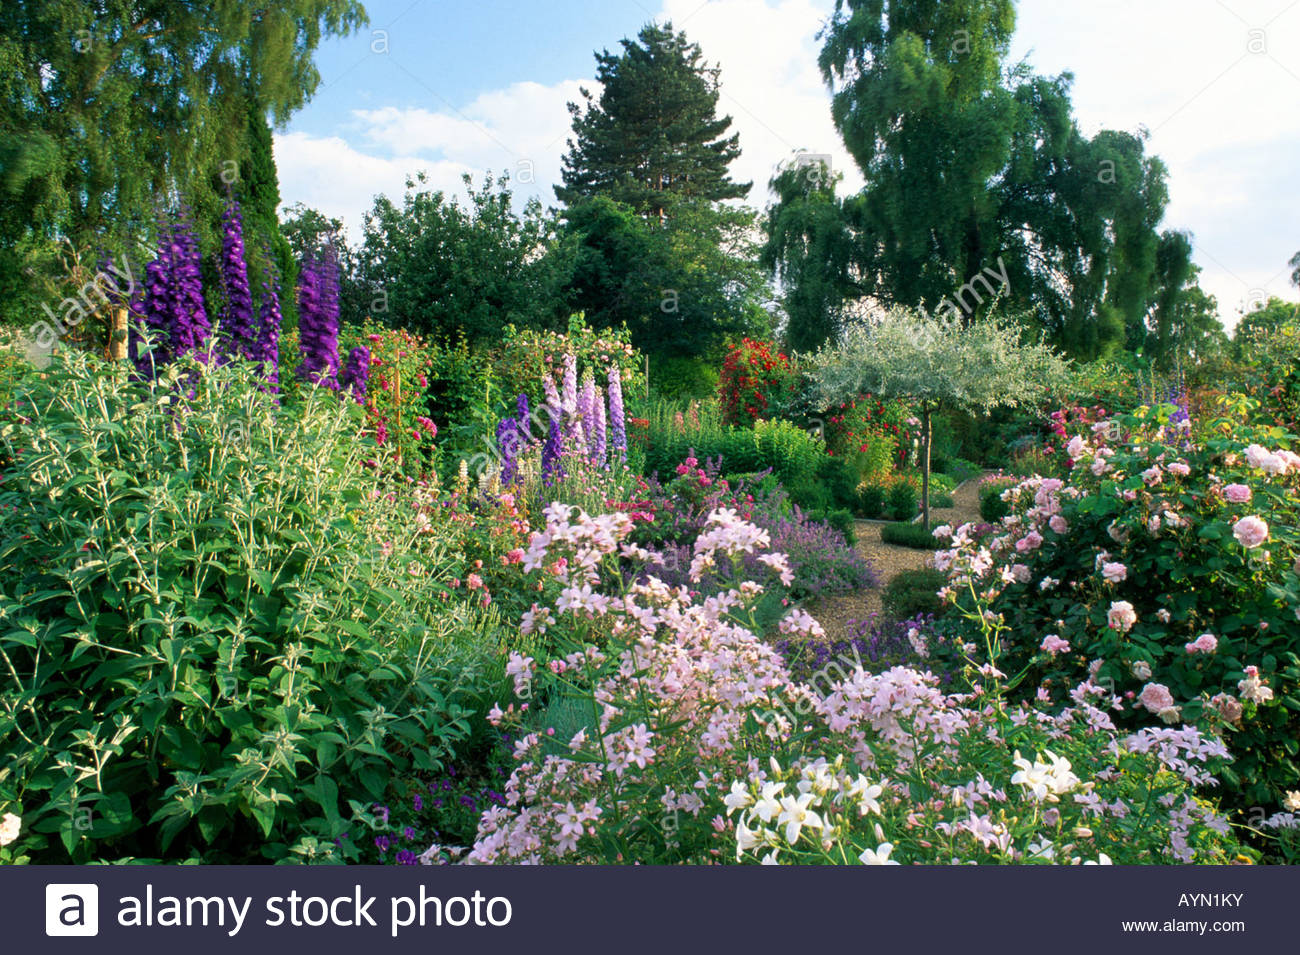 The anchorage kent rose garden underplanted with perennials rosa fantin latour campanula weeping pear tree pyrus salicifolius